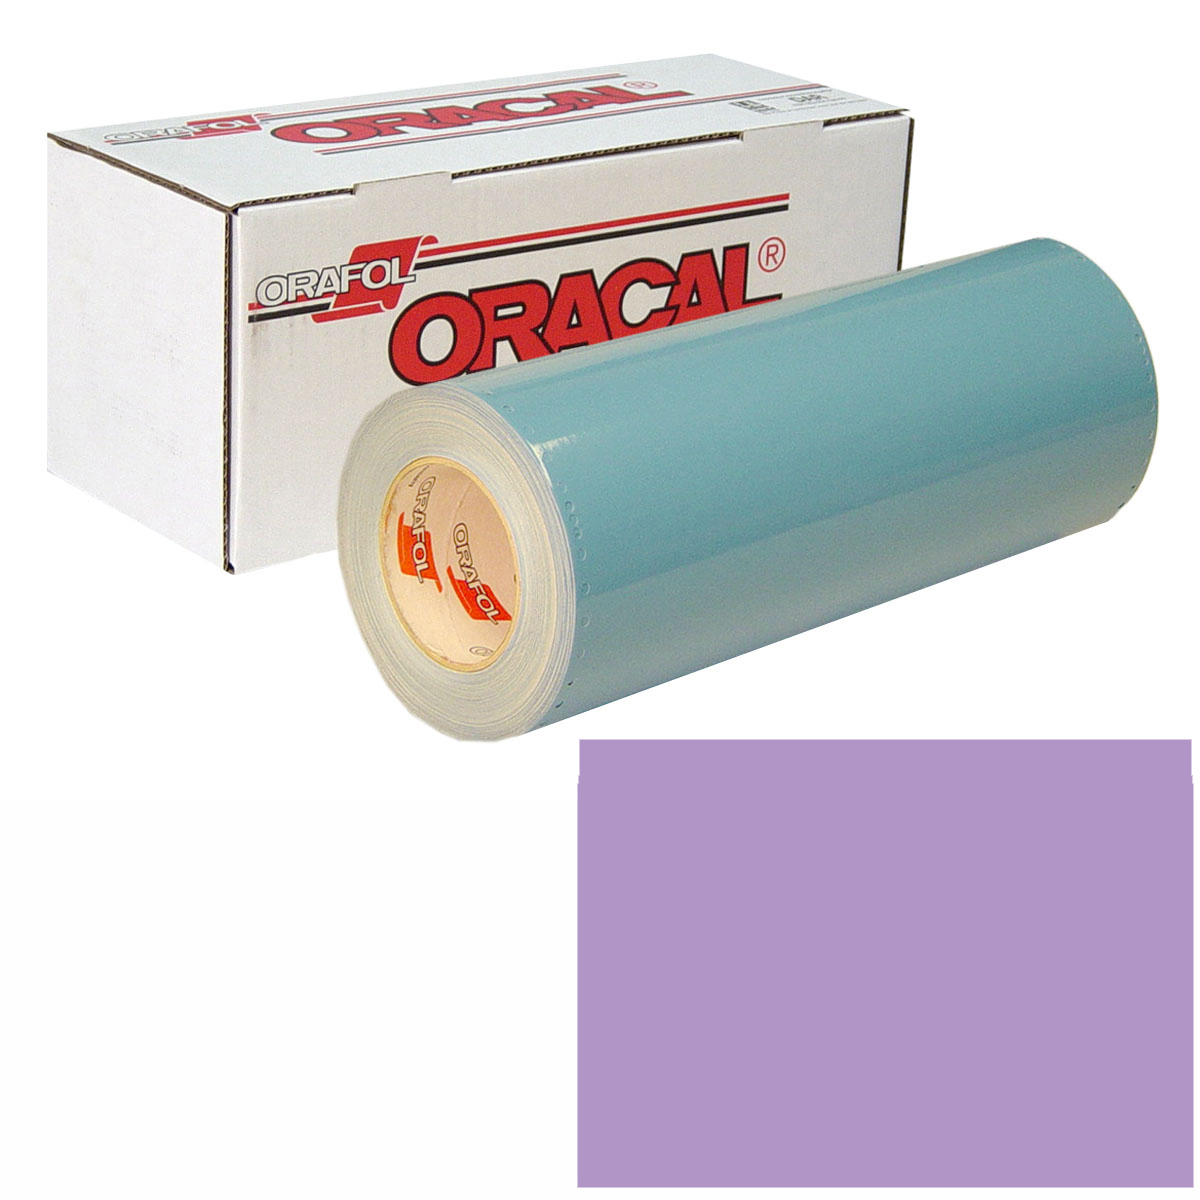 ORACAL 751 Unp 24in X 10yd 042 Lilac